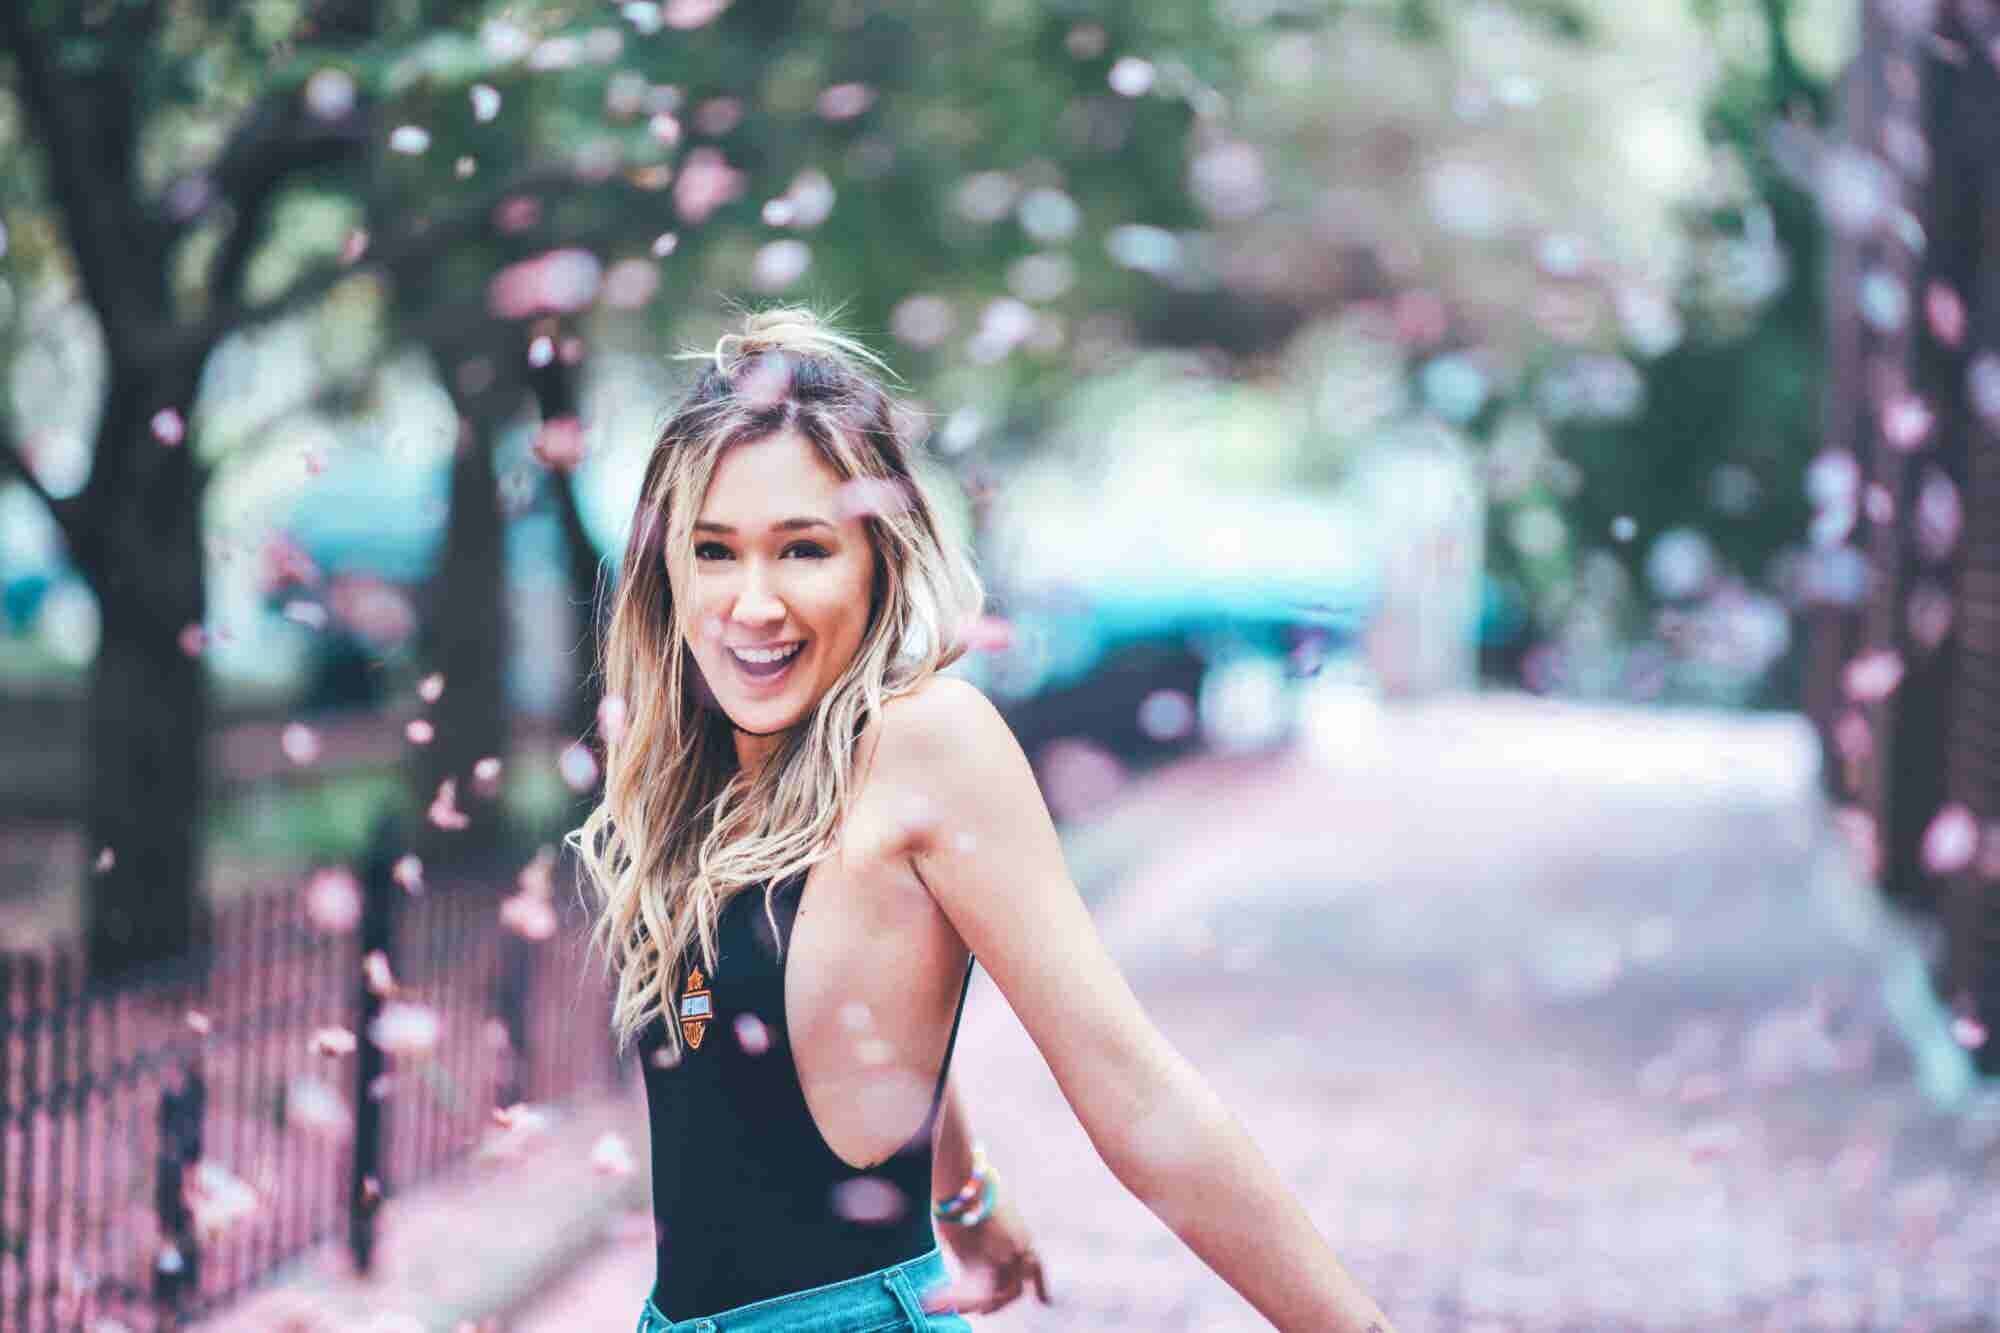 How LaurDIY Went From Dorm Room Blogger to YouTube Star With 8.4 Million Subscribers